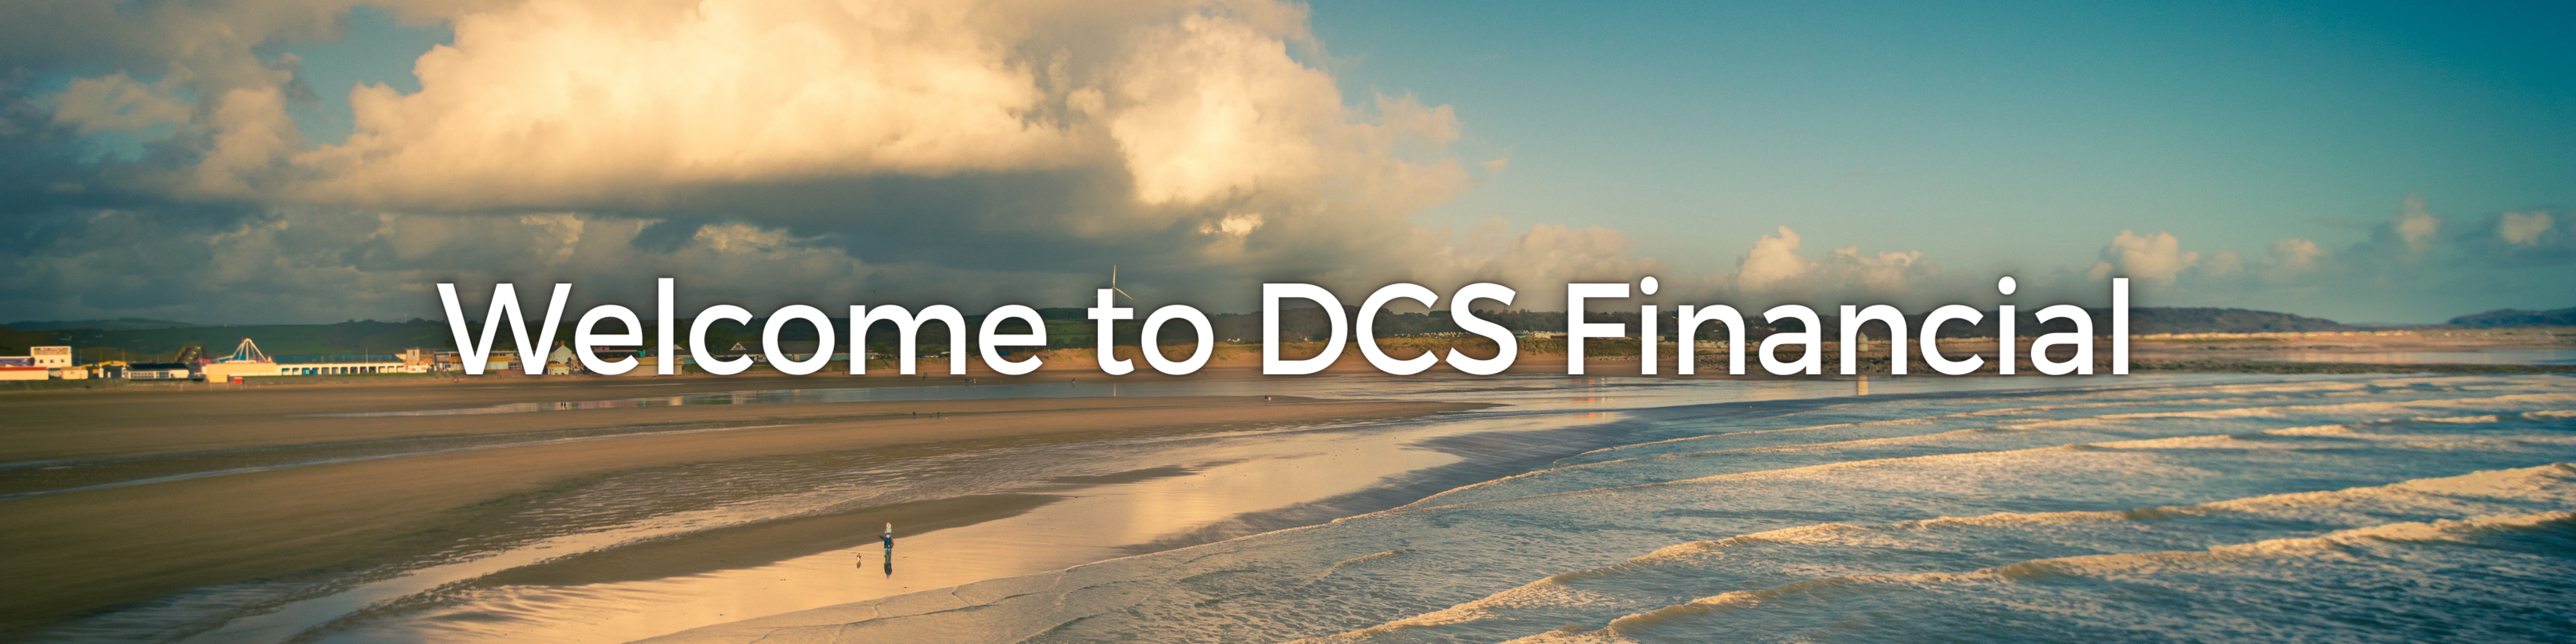 DCS Finanical Home Page